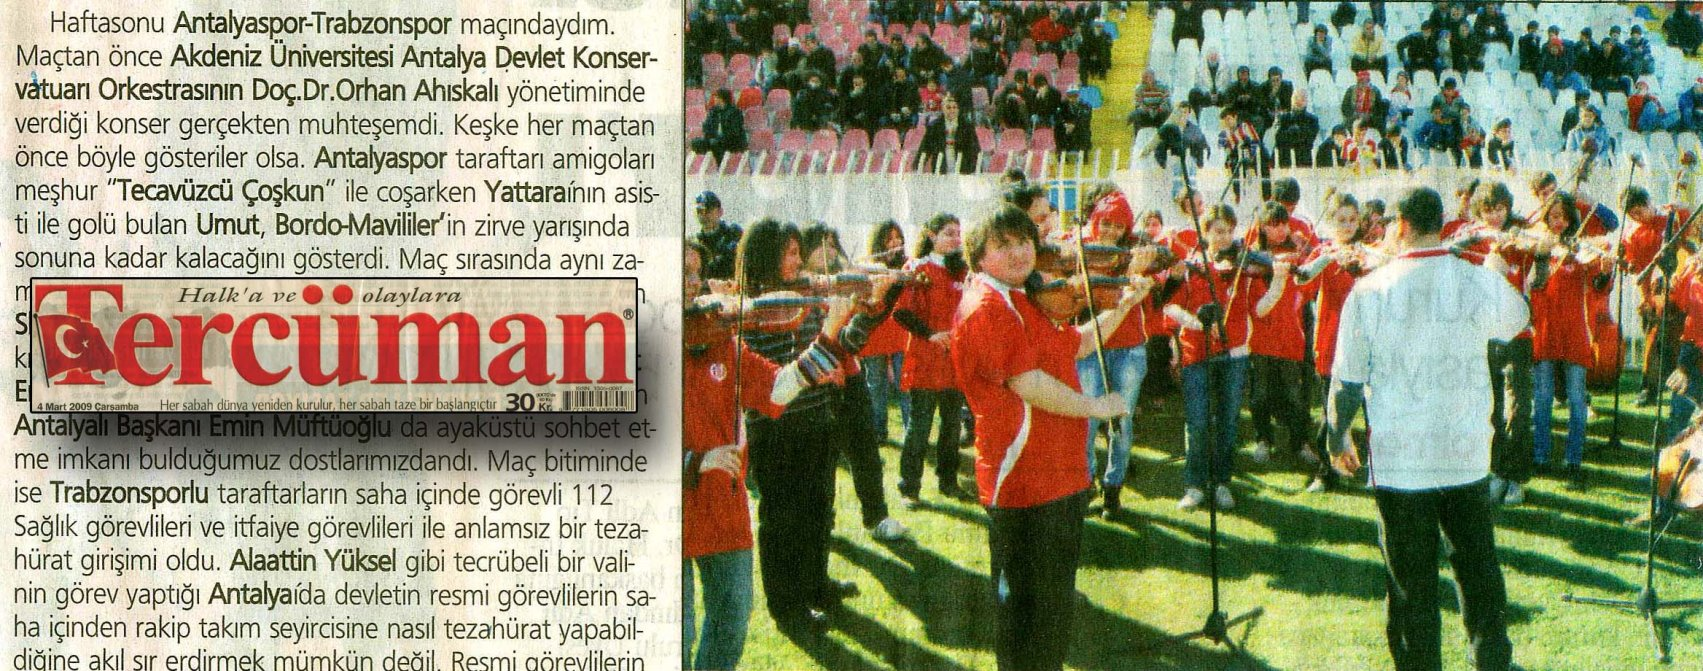 Stadium concert news stuck in a little corner of the sports page, Tercüman, 4 March 2009